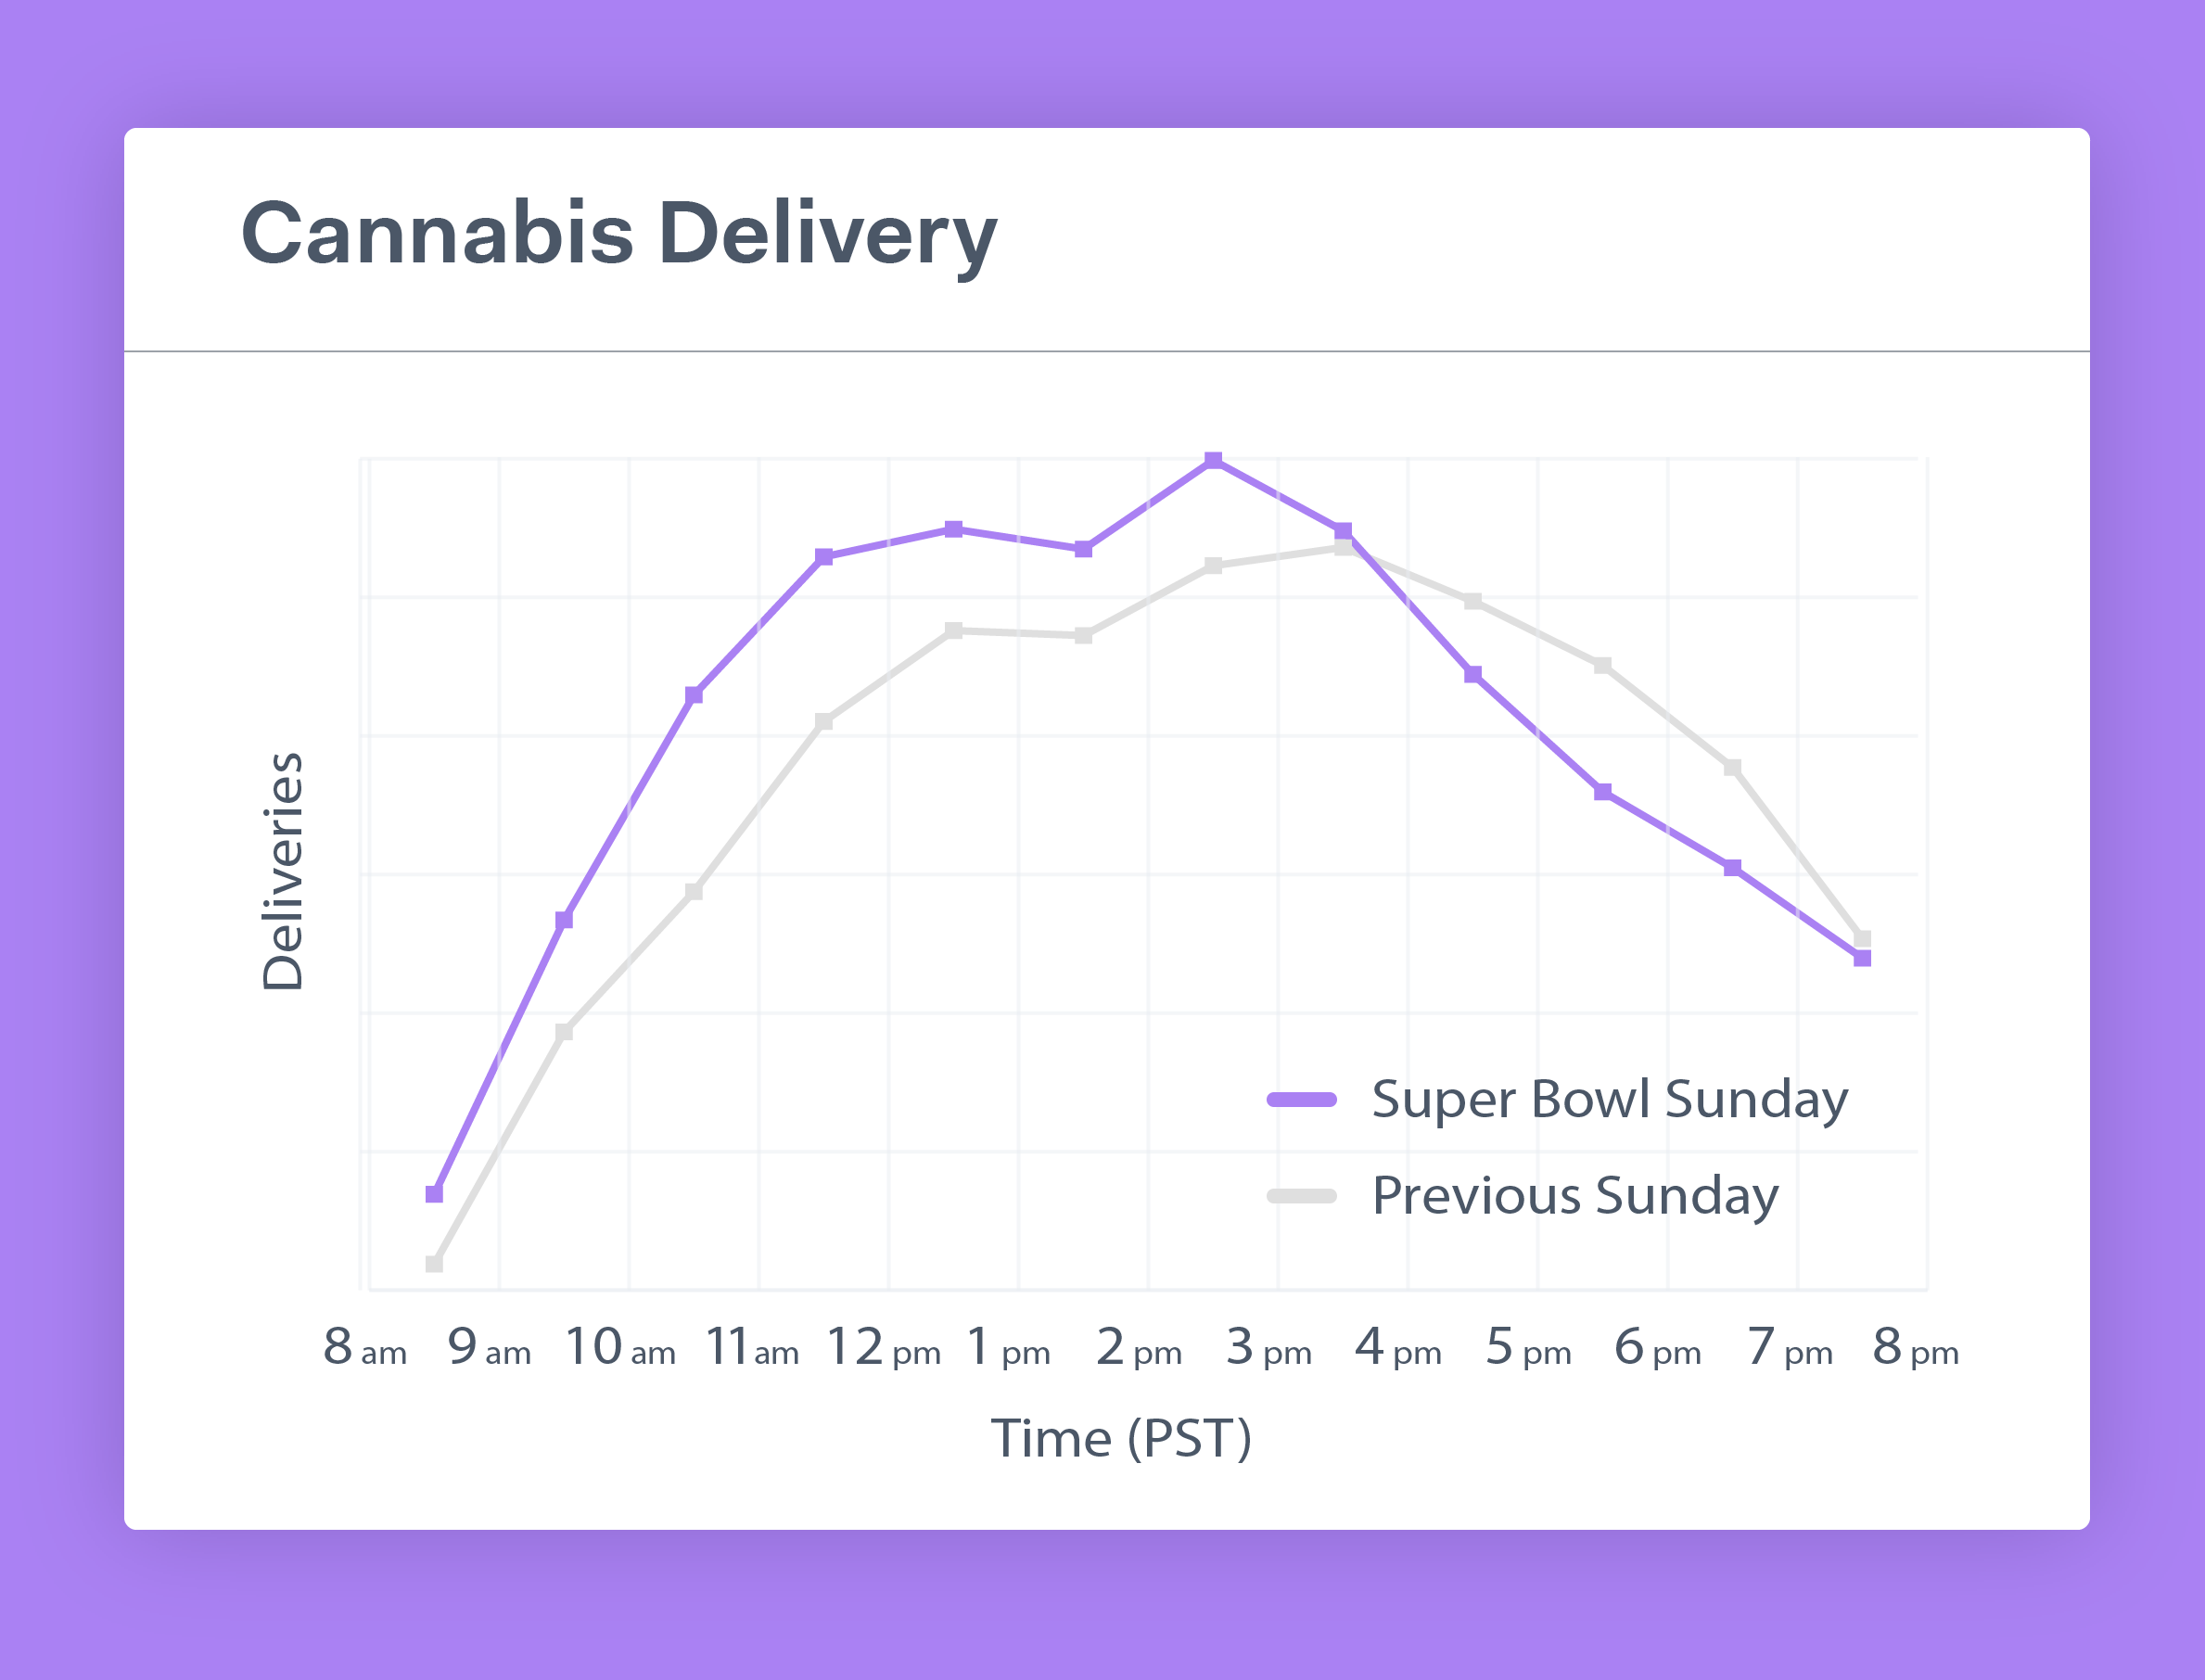 Cannabis volumes increased, but not by much, and tracked 90 minutes earlier in their trend lines from the week before. The were higher in the beginning of the day, lower during the game, and returned to normal by the evening.